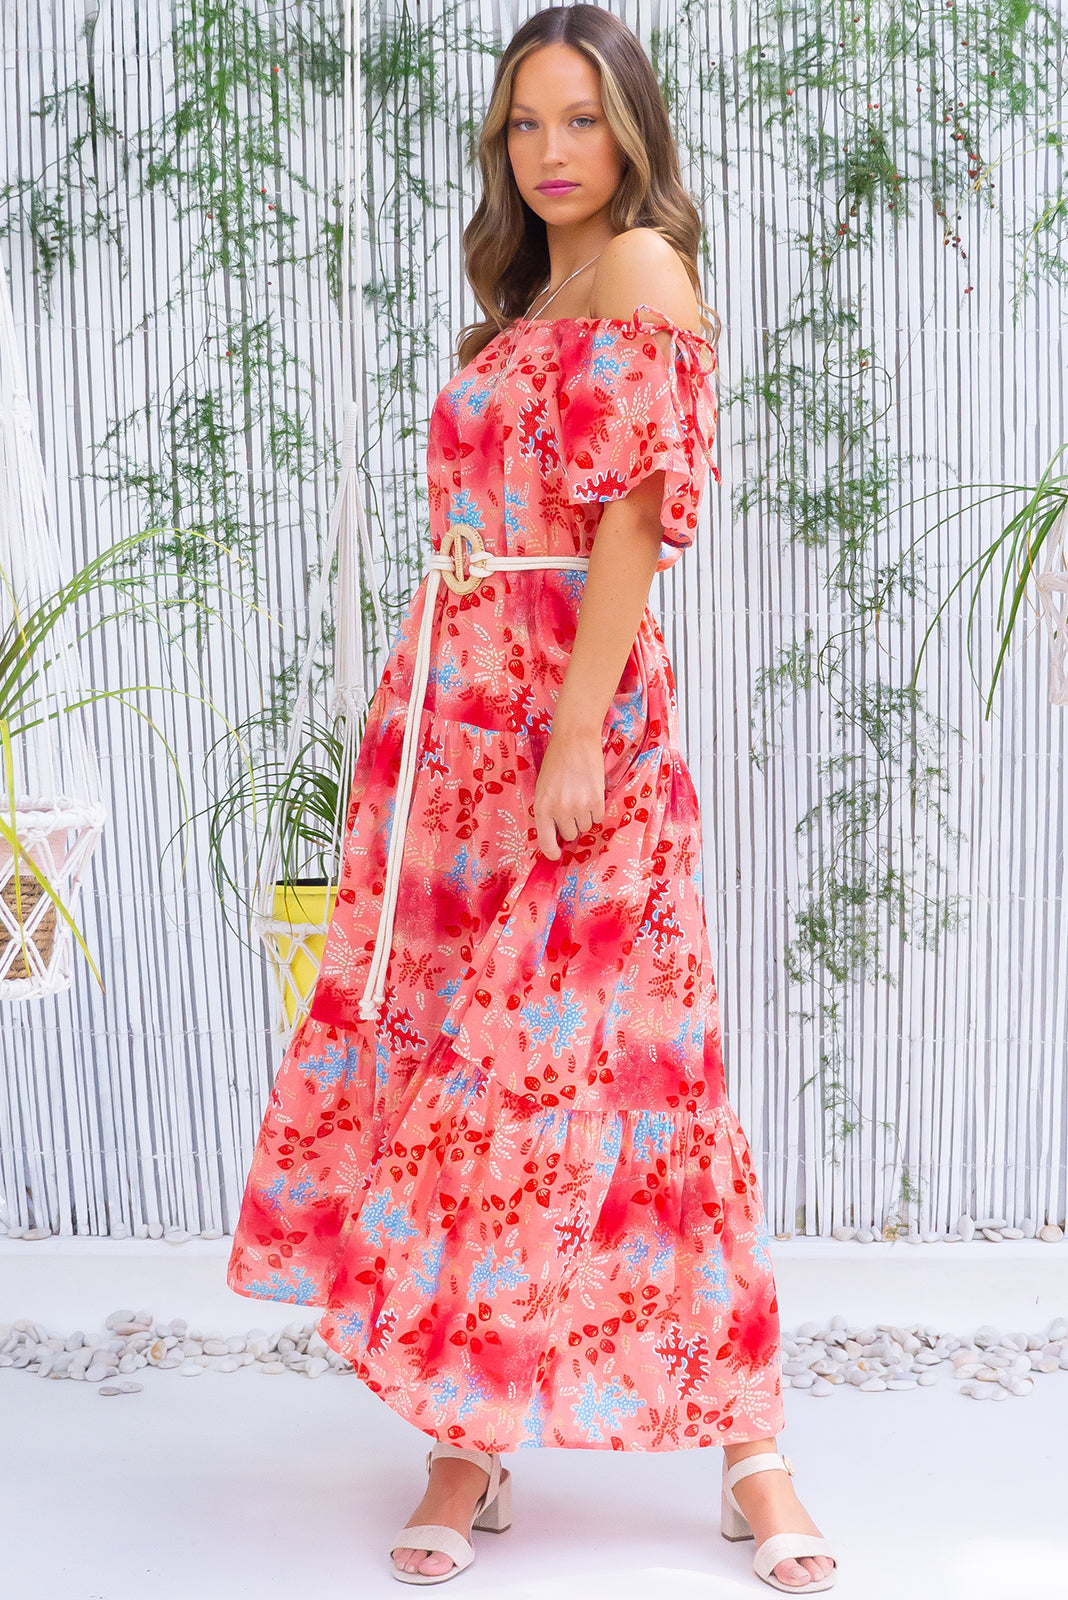 The Marina Coral Cay Maxi Dress features adjustable side neck tie, drop waist with tiered skirt, side pockets, rope belt included and cotton, viscose blended fabric in coral wash effect print.